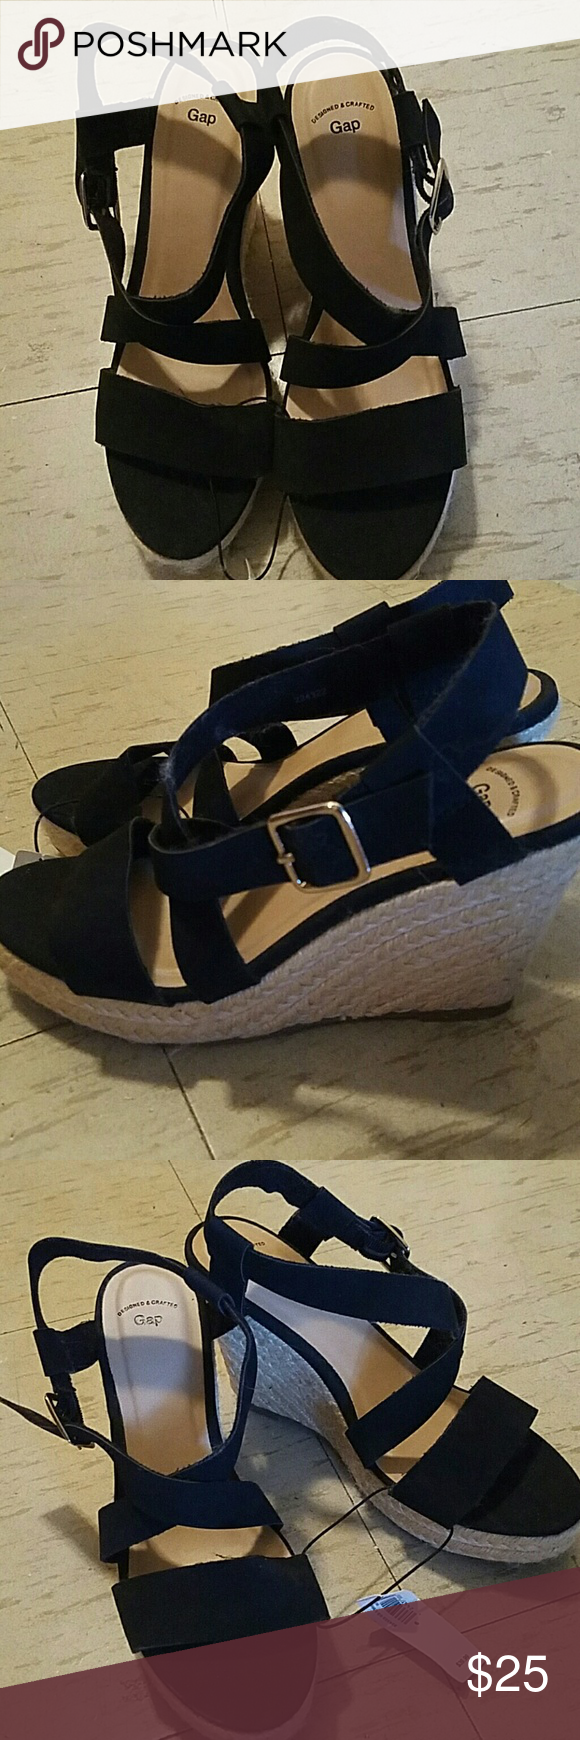 Black sandals gap - Nwt Black Espadrille Sandals Cute Sandals That Are Brand New Black Straps Are Material